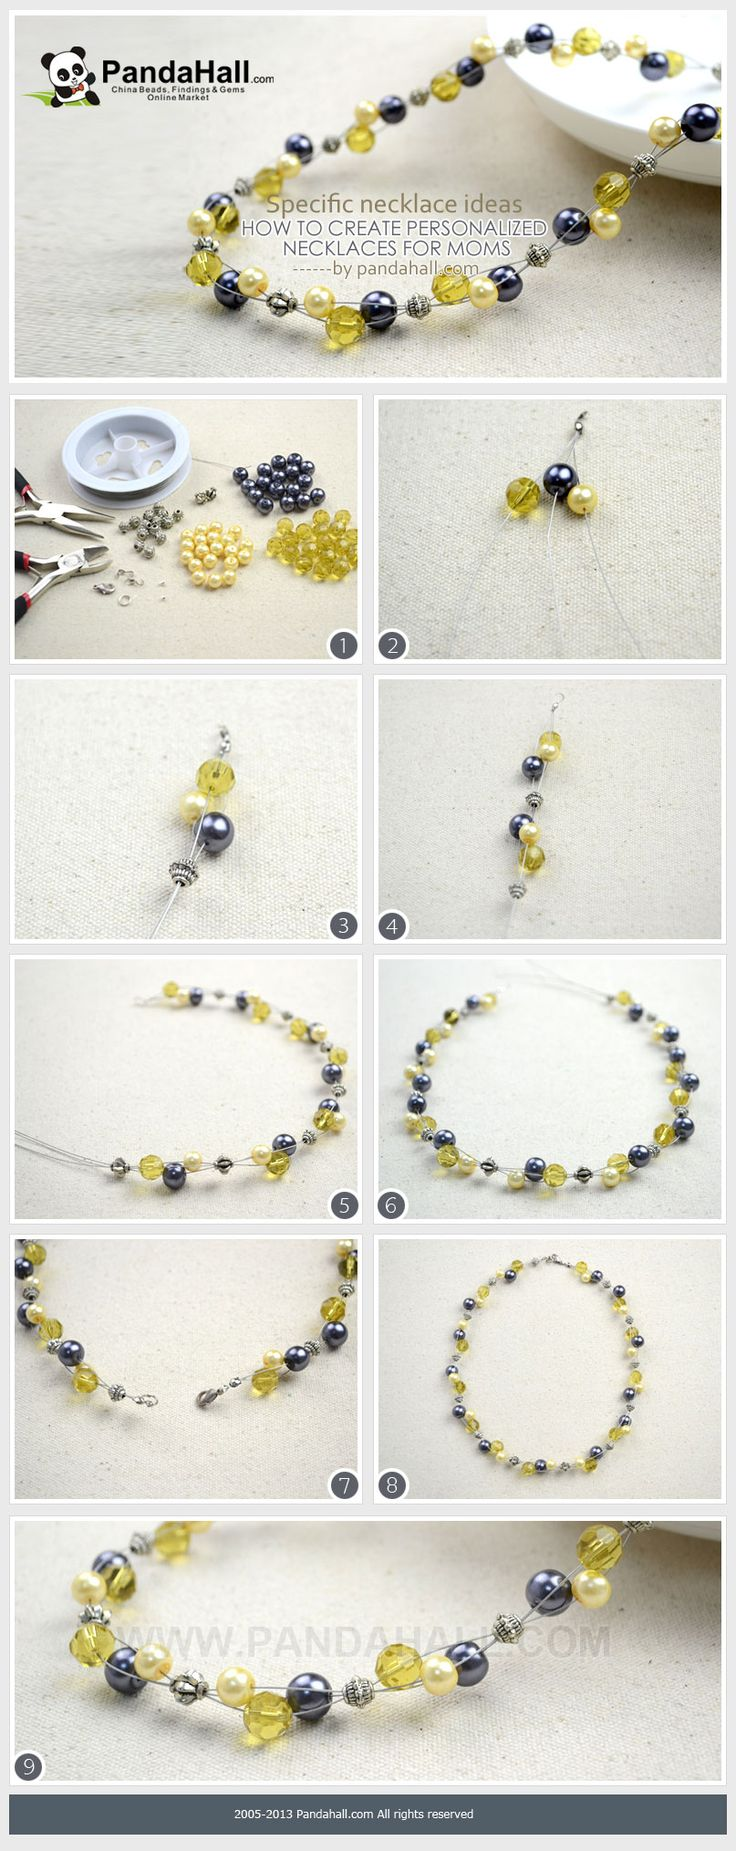 How to give personalized necklaces for moms on the Mother's Day? Beaded pearl necklace may be regarded as one stunning and simple choice among mass of necklace ideas.